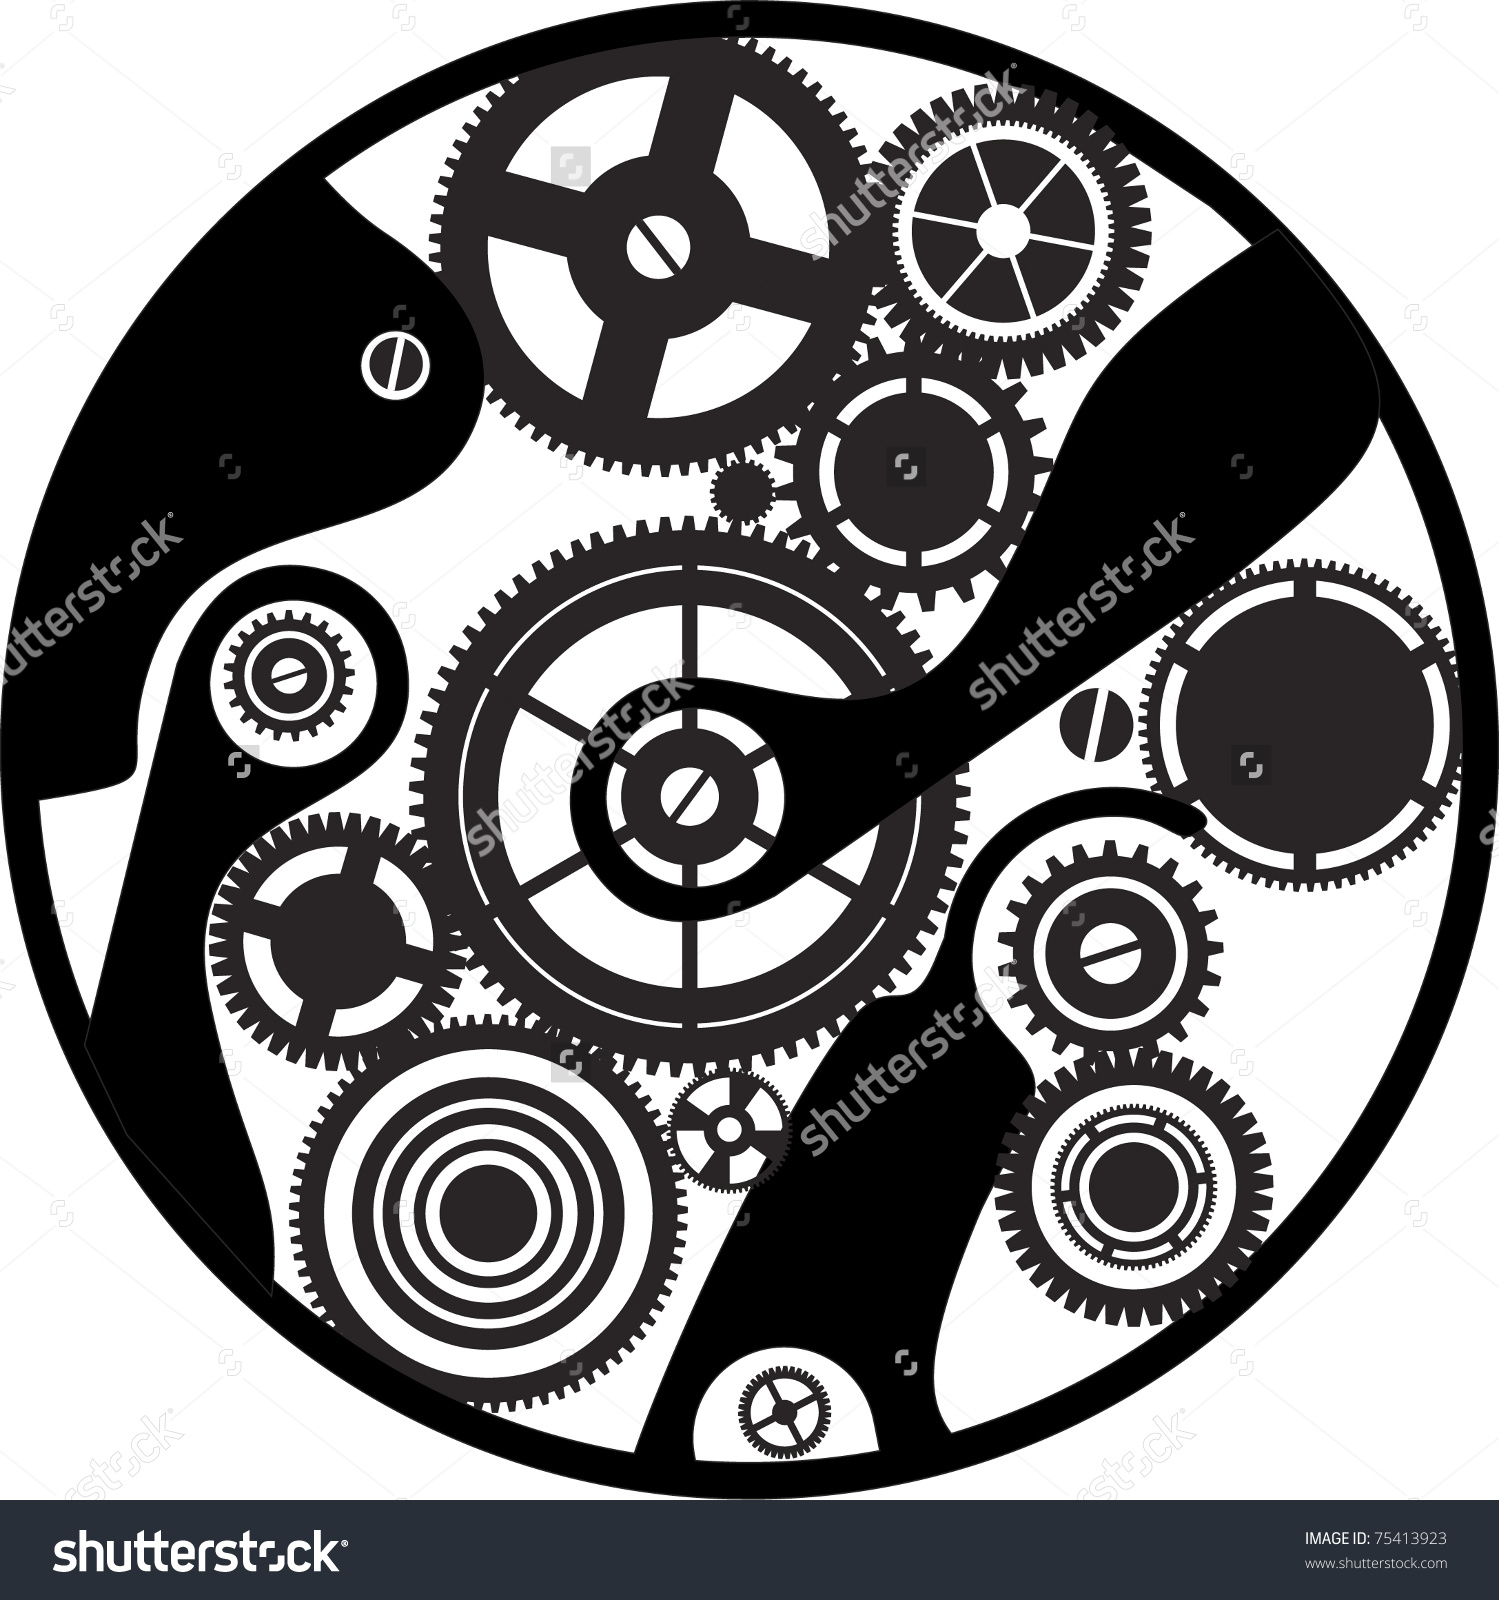 Machine clipart clockwork Cameo Steampunk vector silhouette Explore